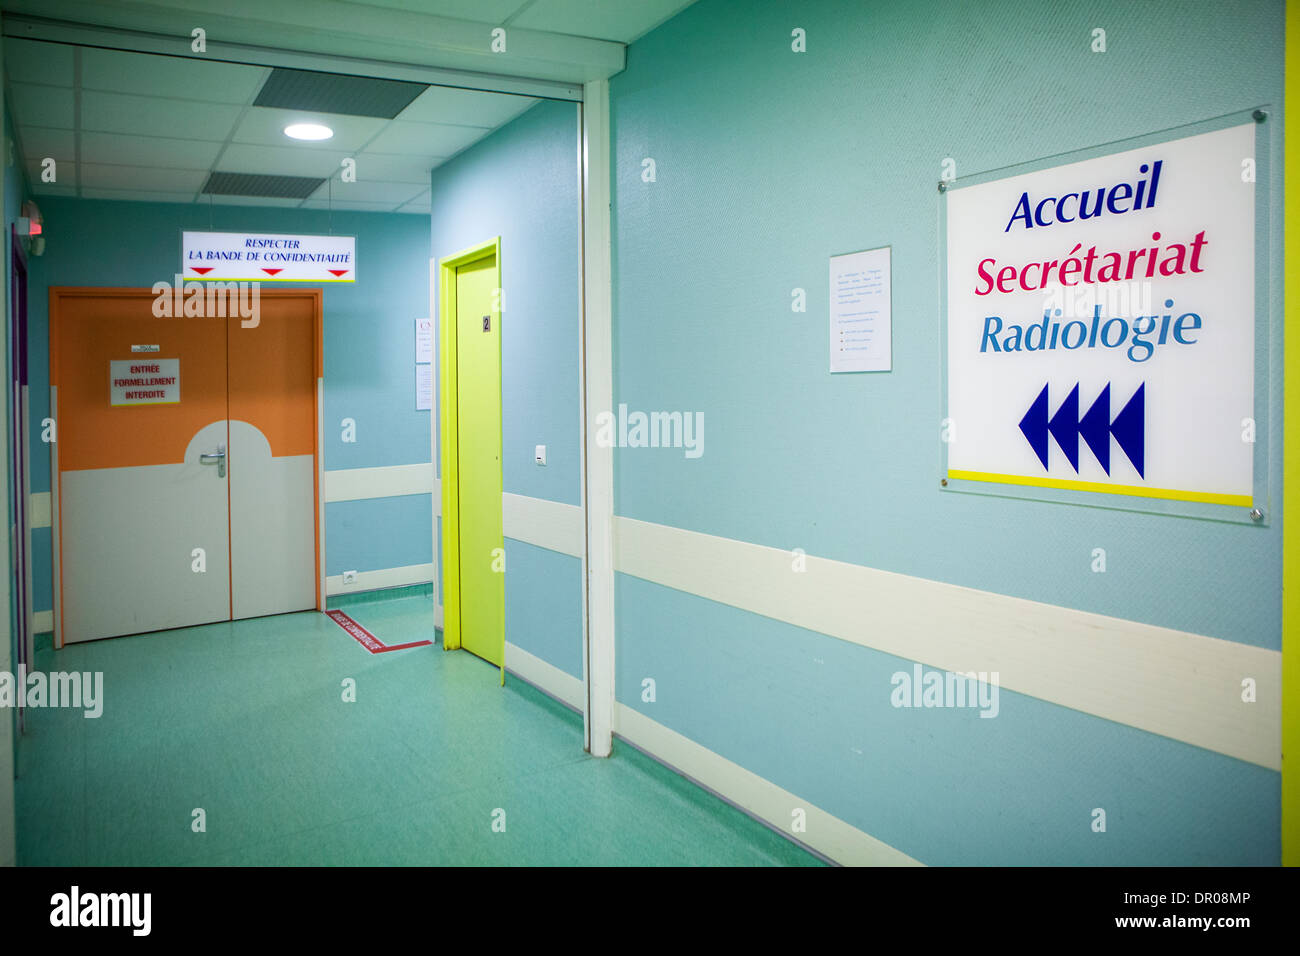 INTERIOR OF A HOSPITAL - Stock Image